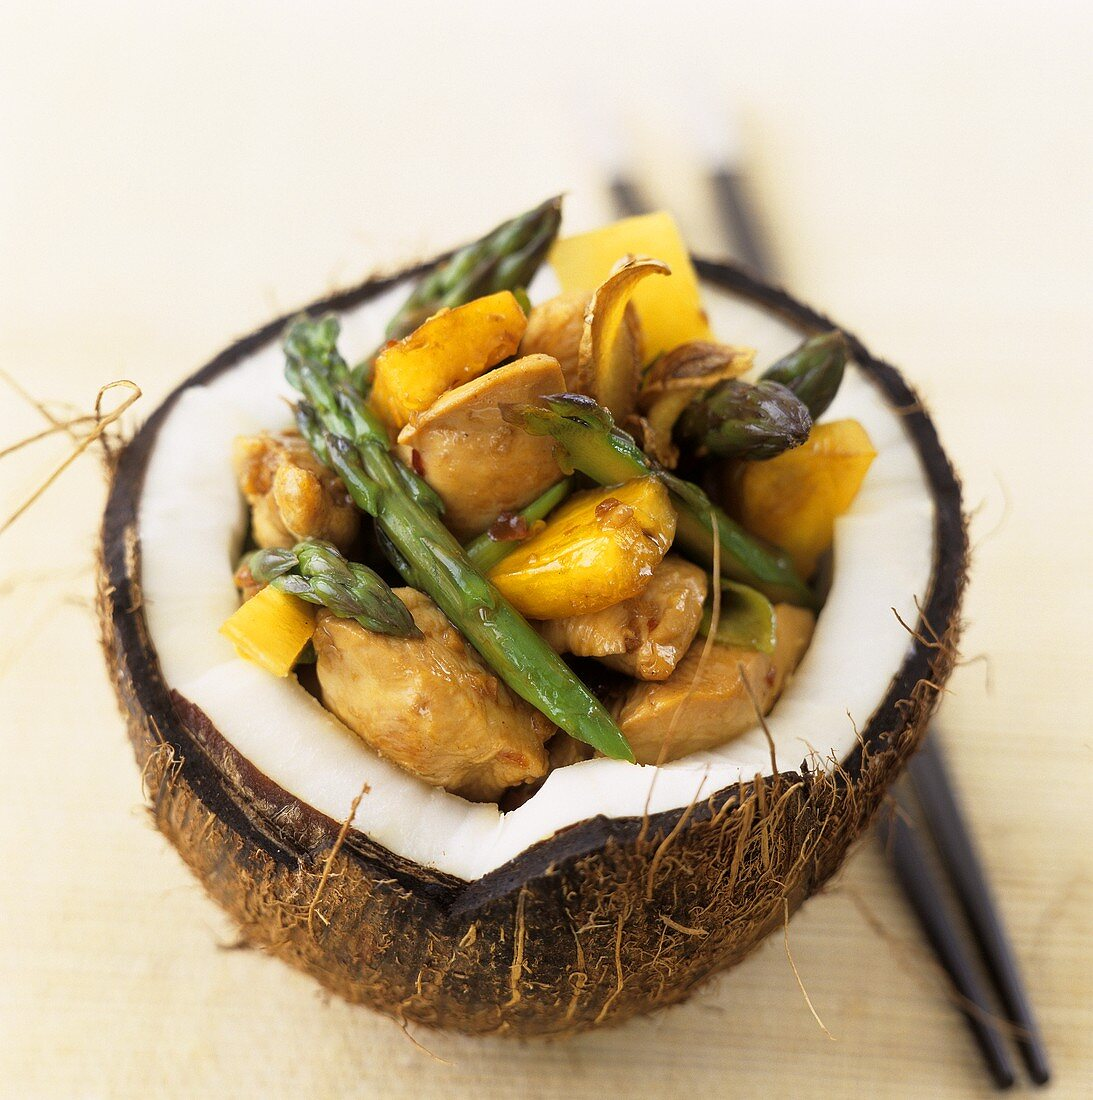 Sweet and sour chicken ragout in hollowed-out coconut